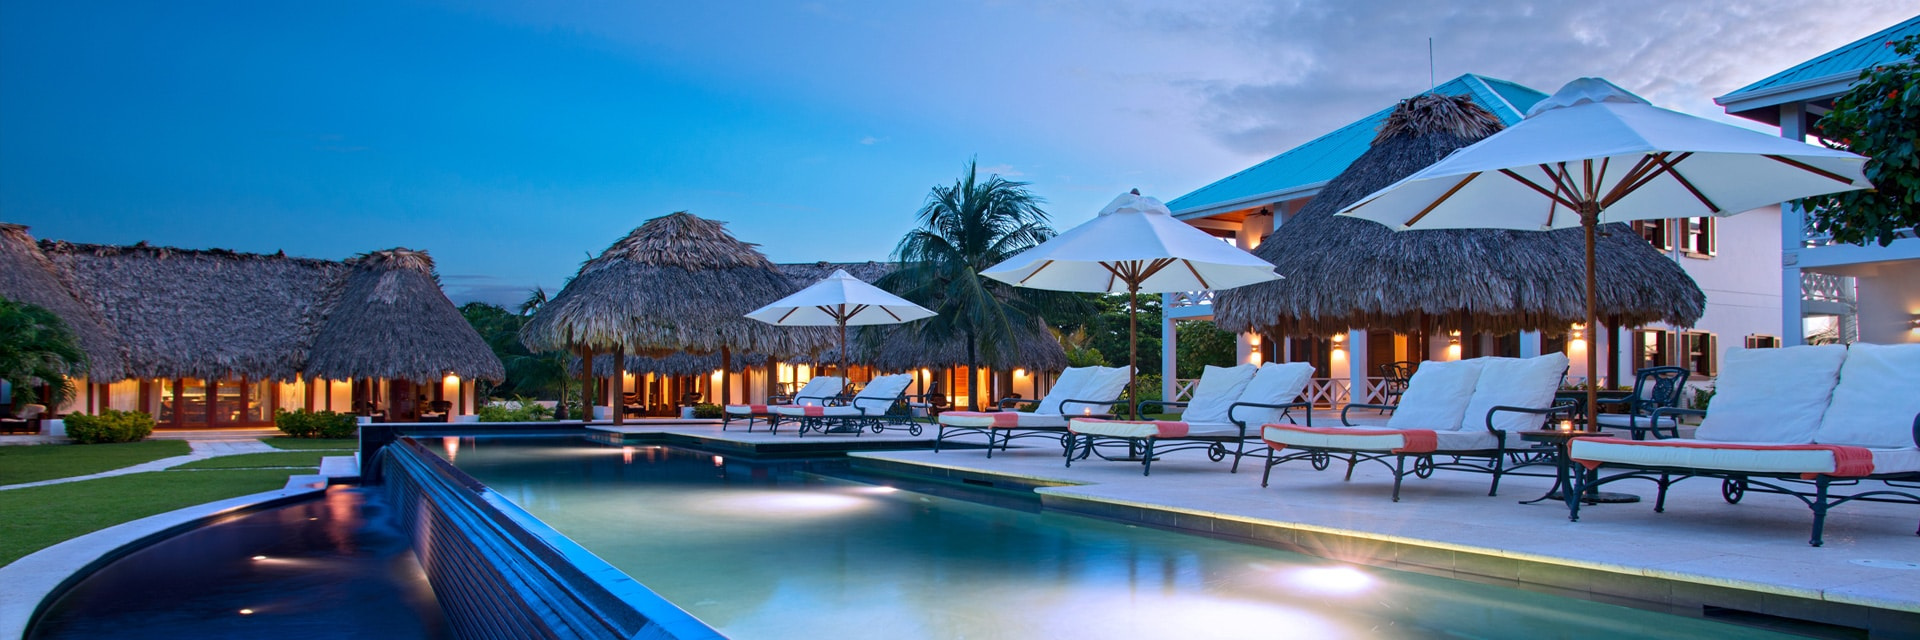 Main infinity pool at dusk, Victoria House Resort and Spa, Belize